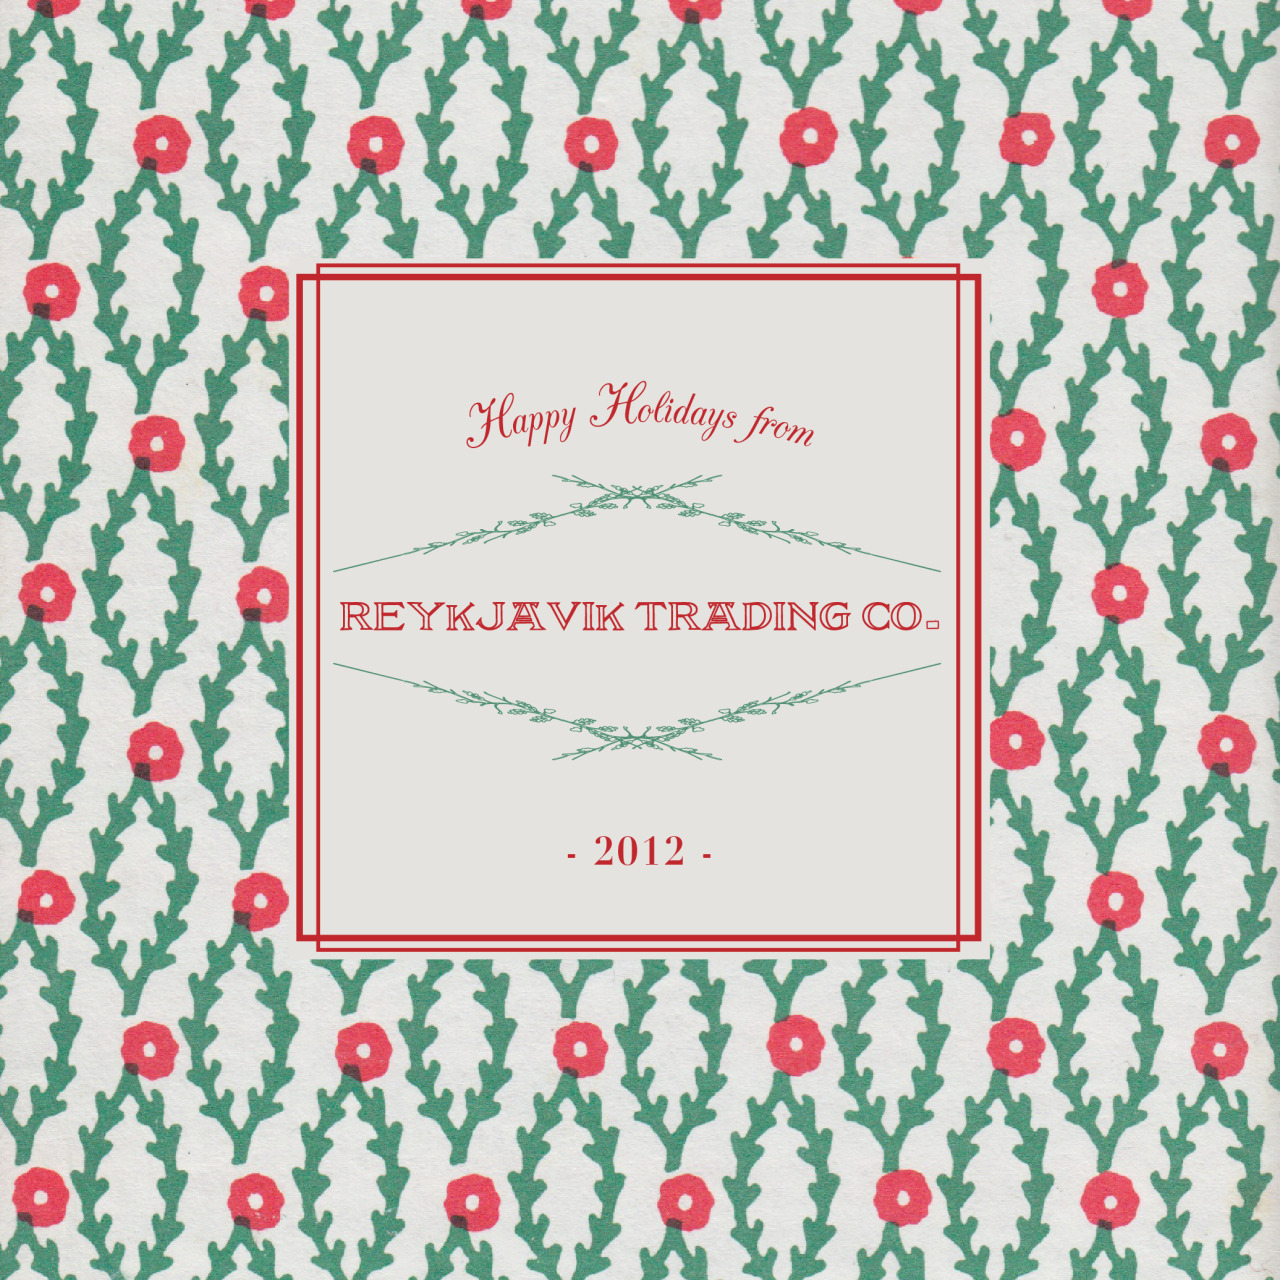 Season's greetings from Reykjavík Trading Co. We thank you for all your love & support as we grow & look forward to 2013…